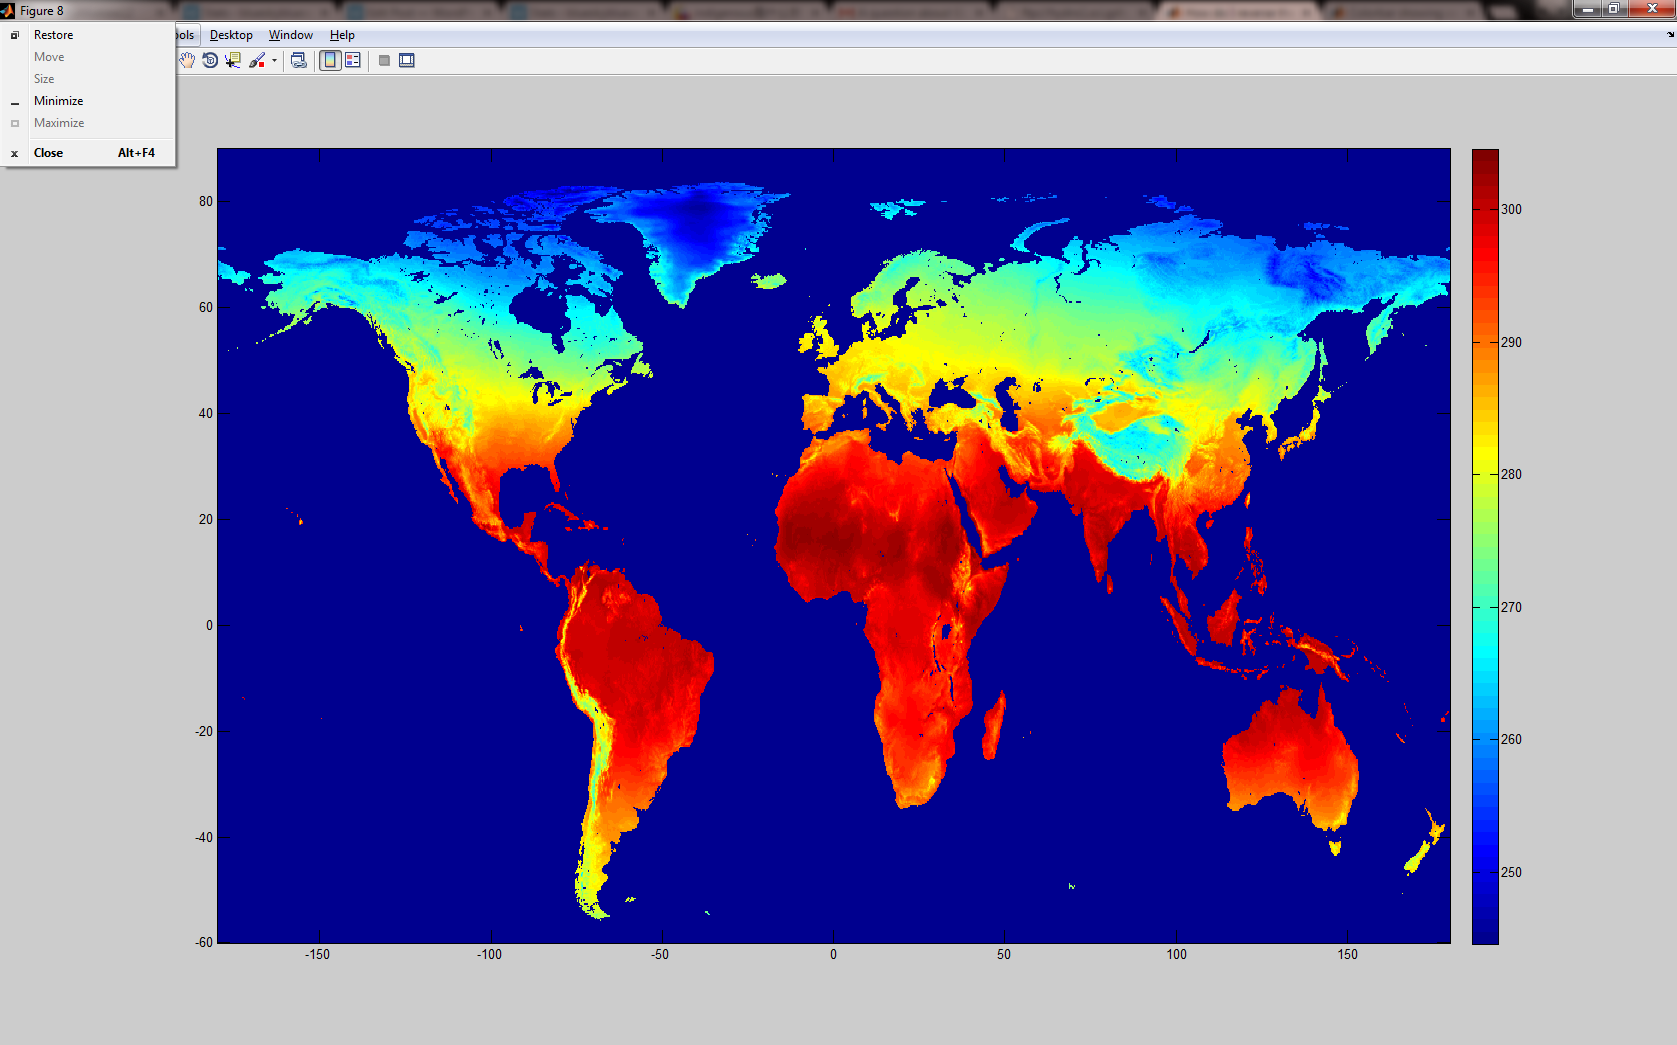 Pcolormpcolor cannot create world map correctly matlab answers h2 imagesclonlatstattai setgcaydirnormal colorbar gumiabroncs Choice Image